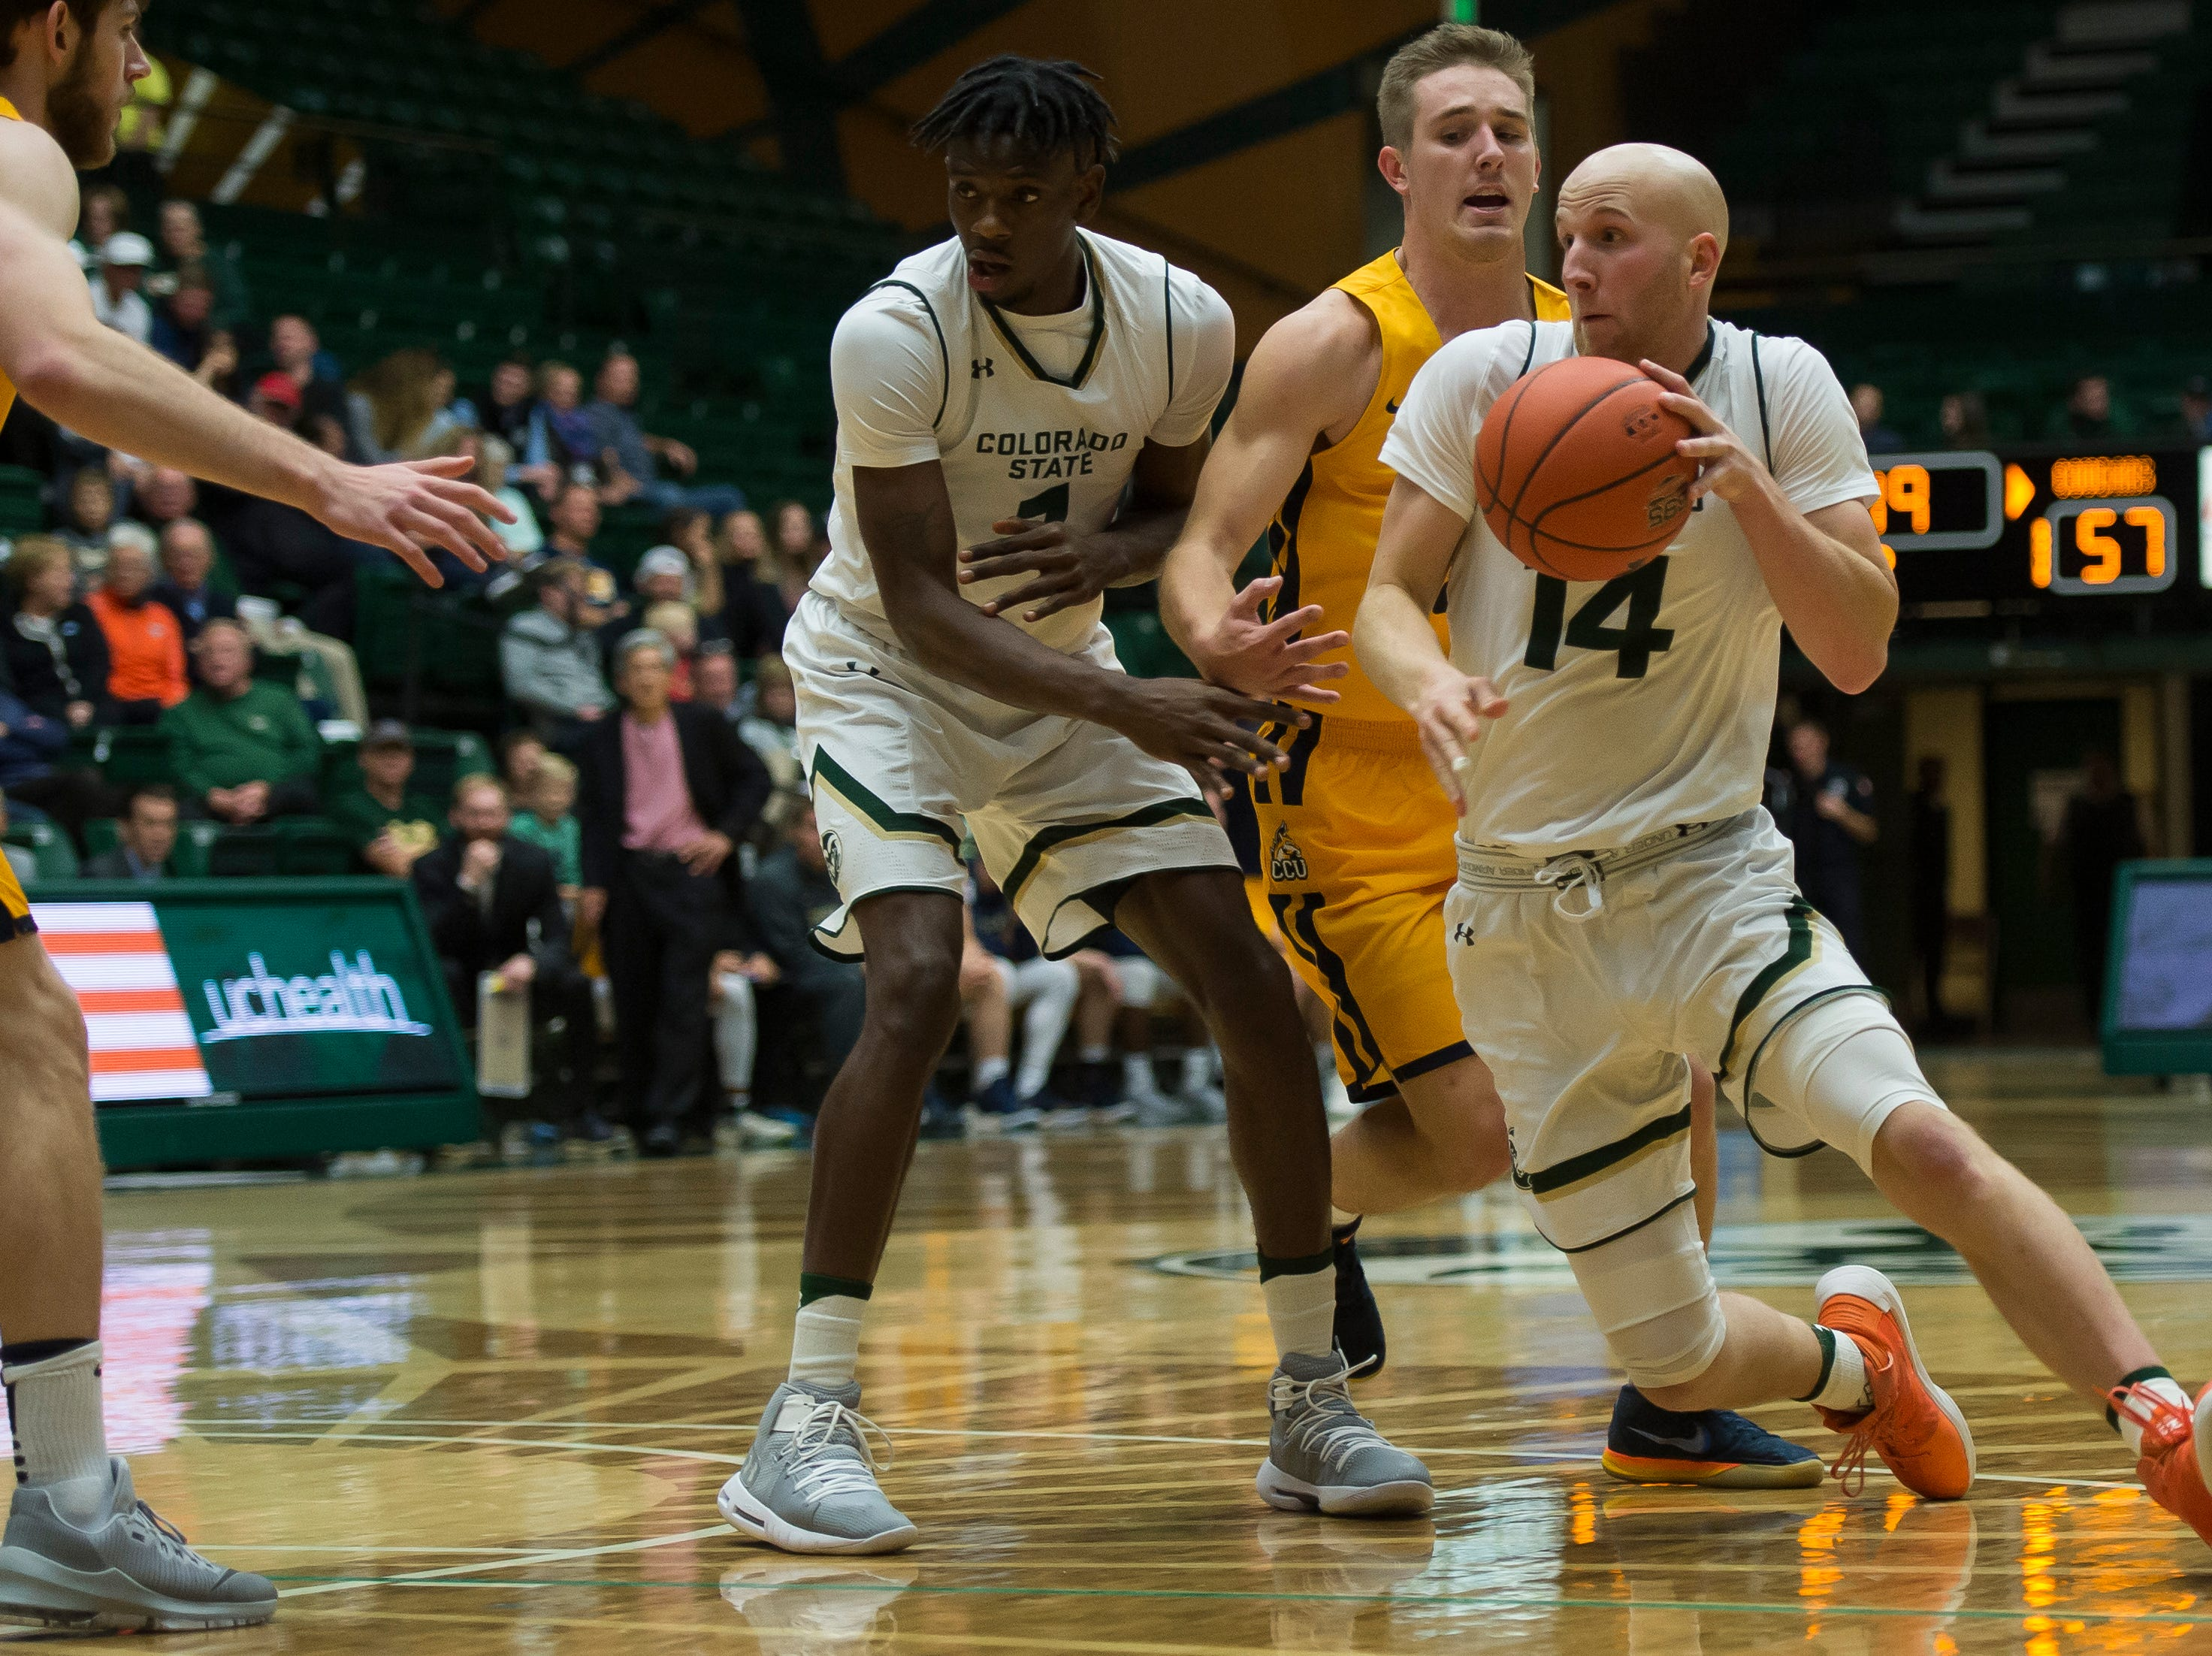 Colorado State University senior guard Robbie Berwick (14) turns the corner during a game against Colorado Christian University on Wednesday, Nov. 7, 2018, at Moby Arena in Fort Collins, Colo.